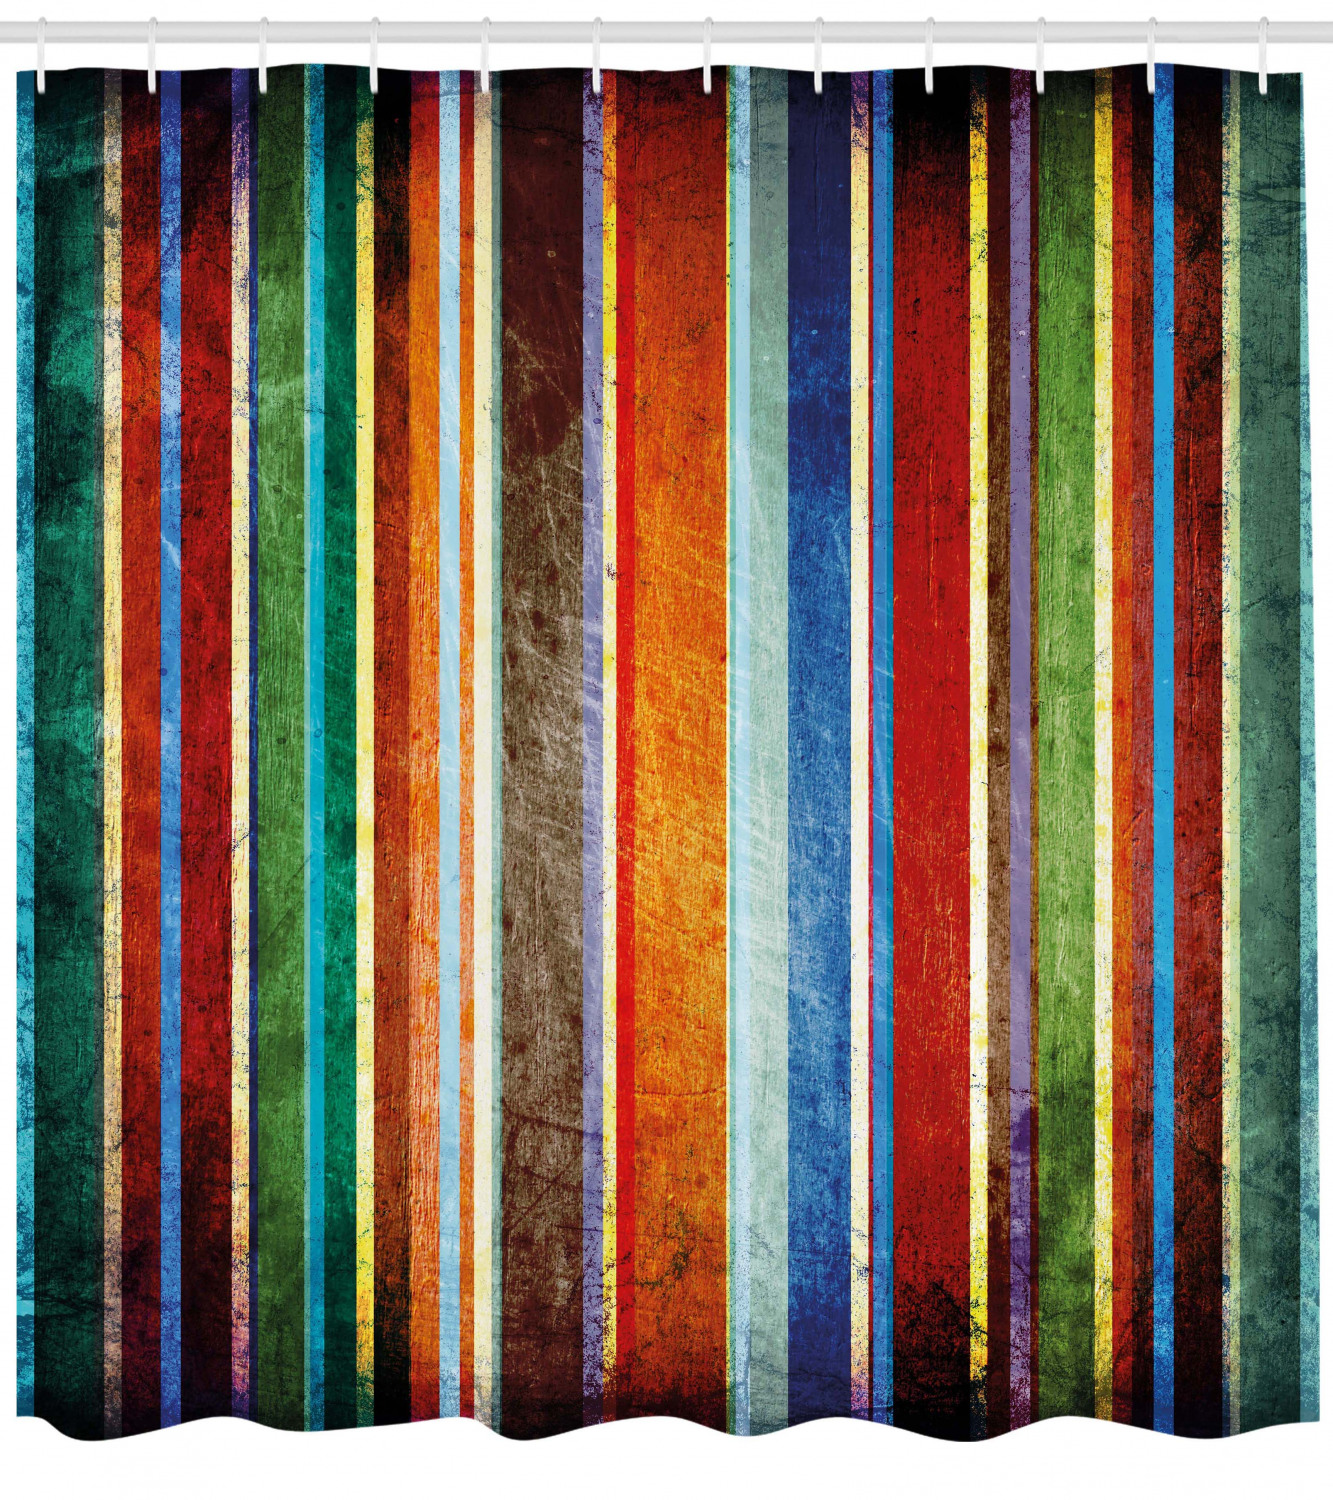 Stripes Shower Curtain Vertical Lined Colorful Retro Bands With Damage Effects Old Fashion Weathered Display Fabric Bathroom Set With Hooks 69w X